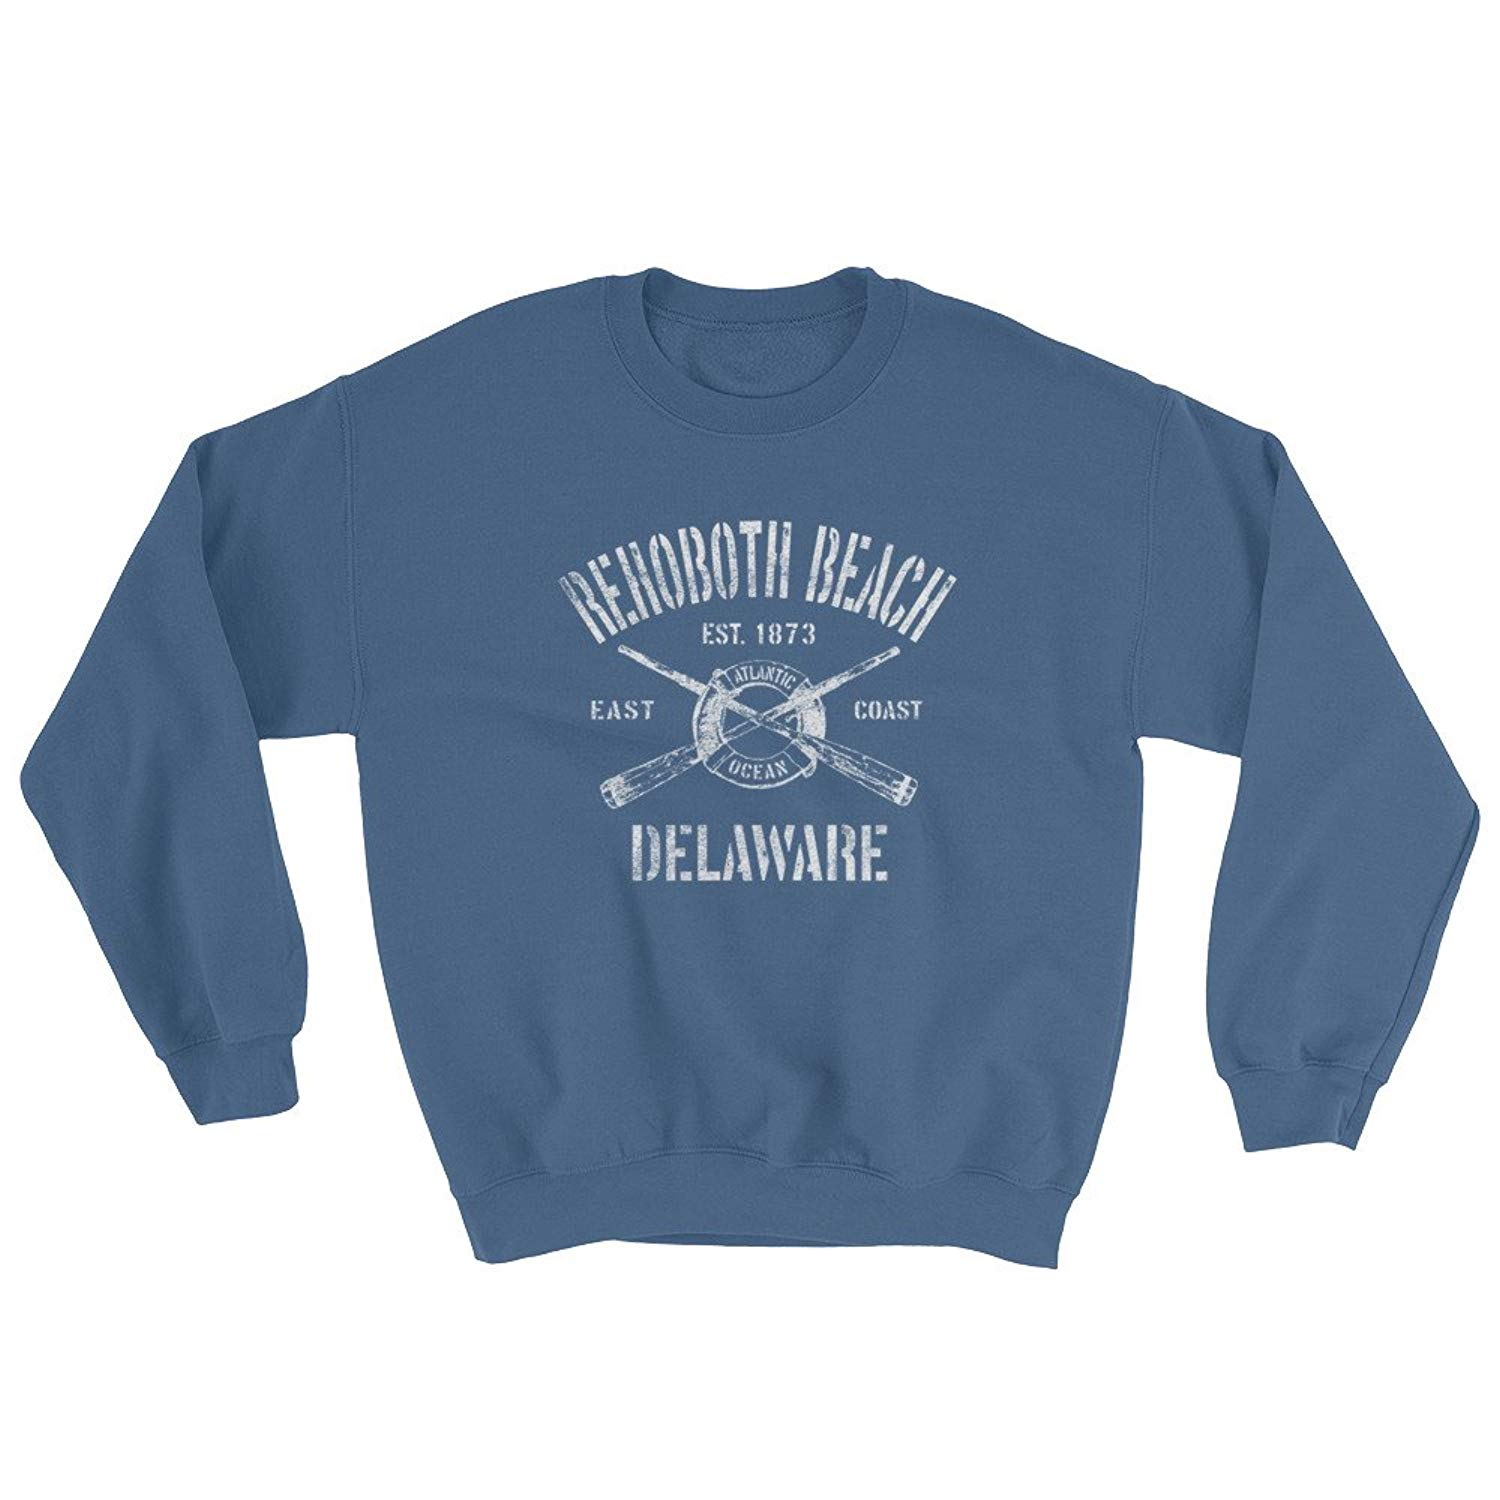 Jim Shorts Rehoboth Beach Delaware DE Sweatshirt - Vintage Nautical Boating Sailing Design